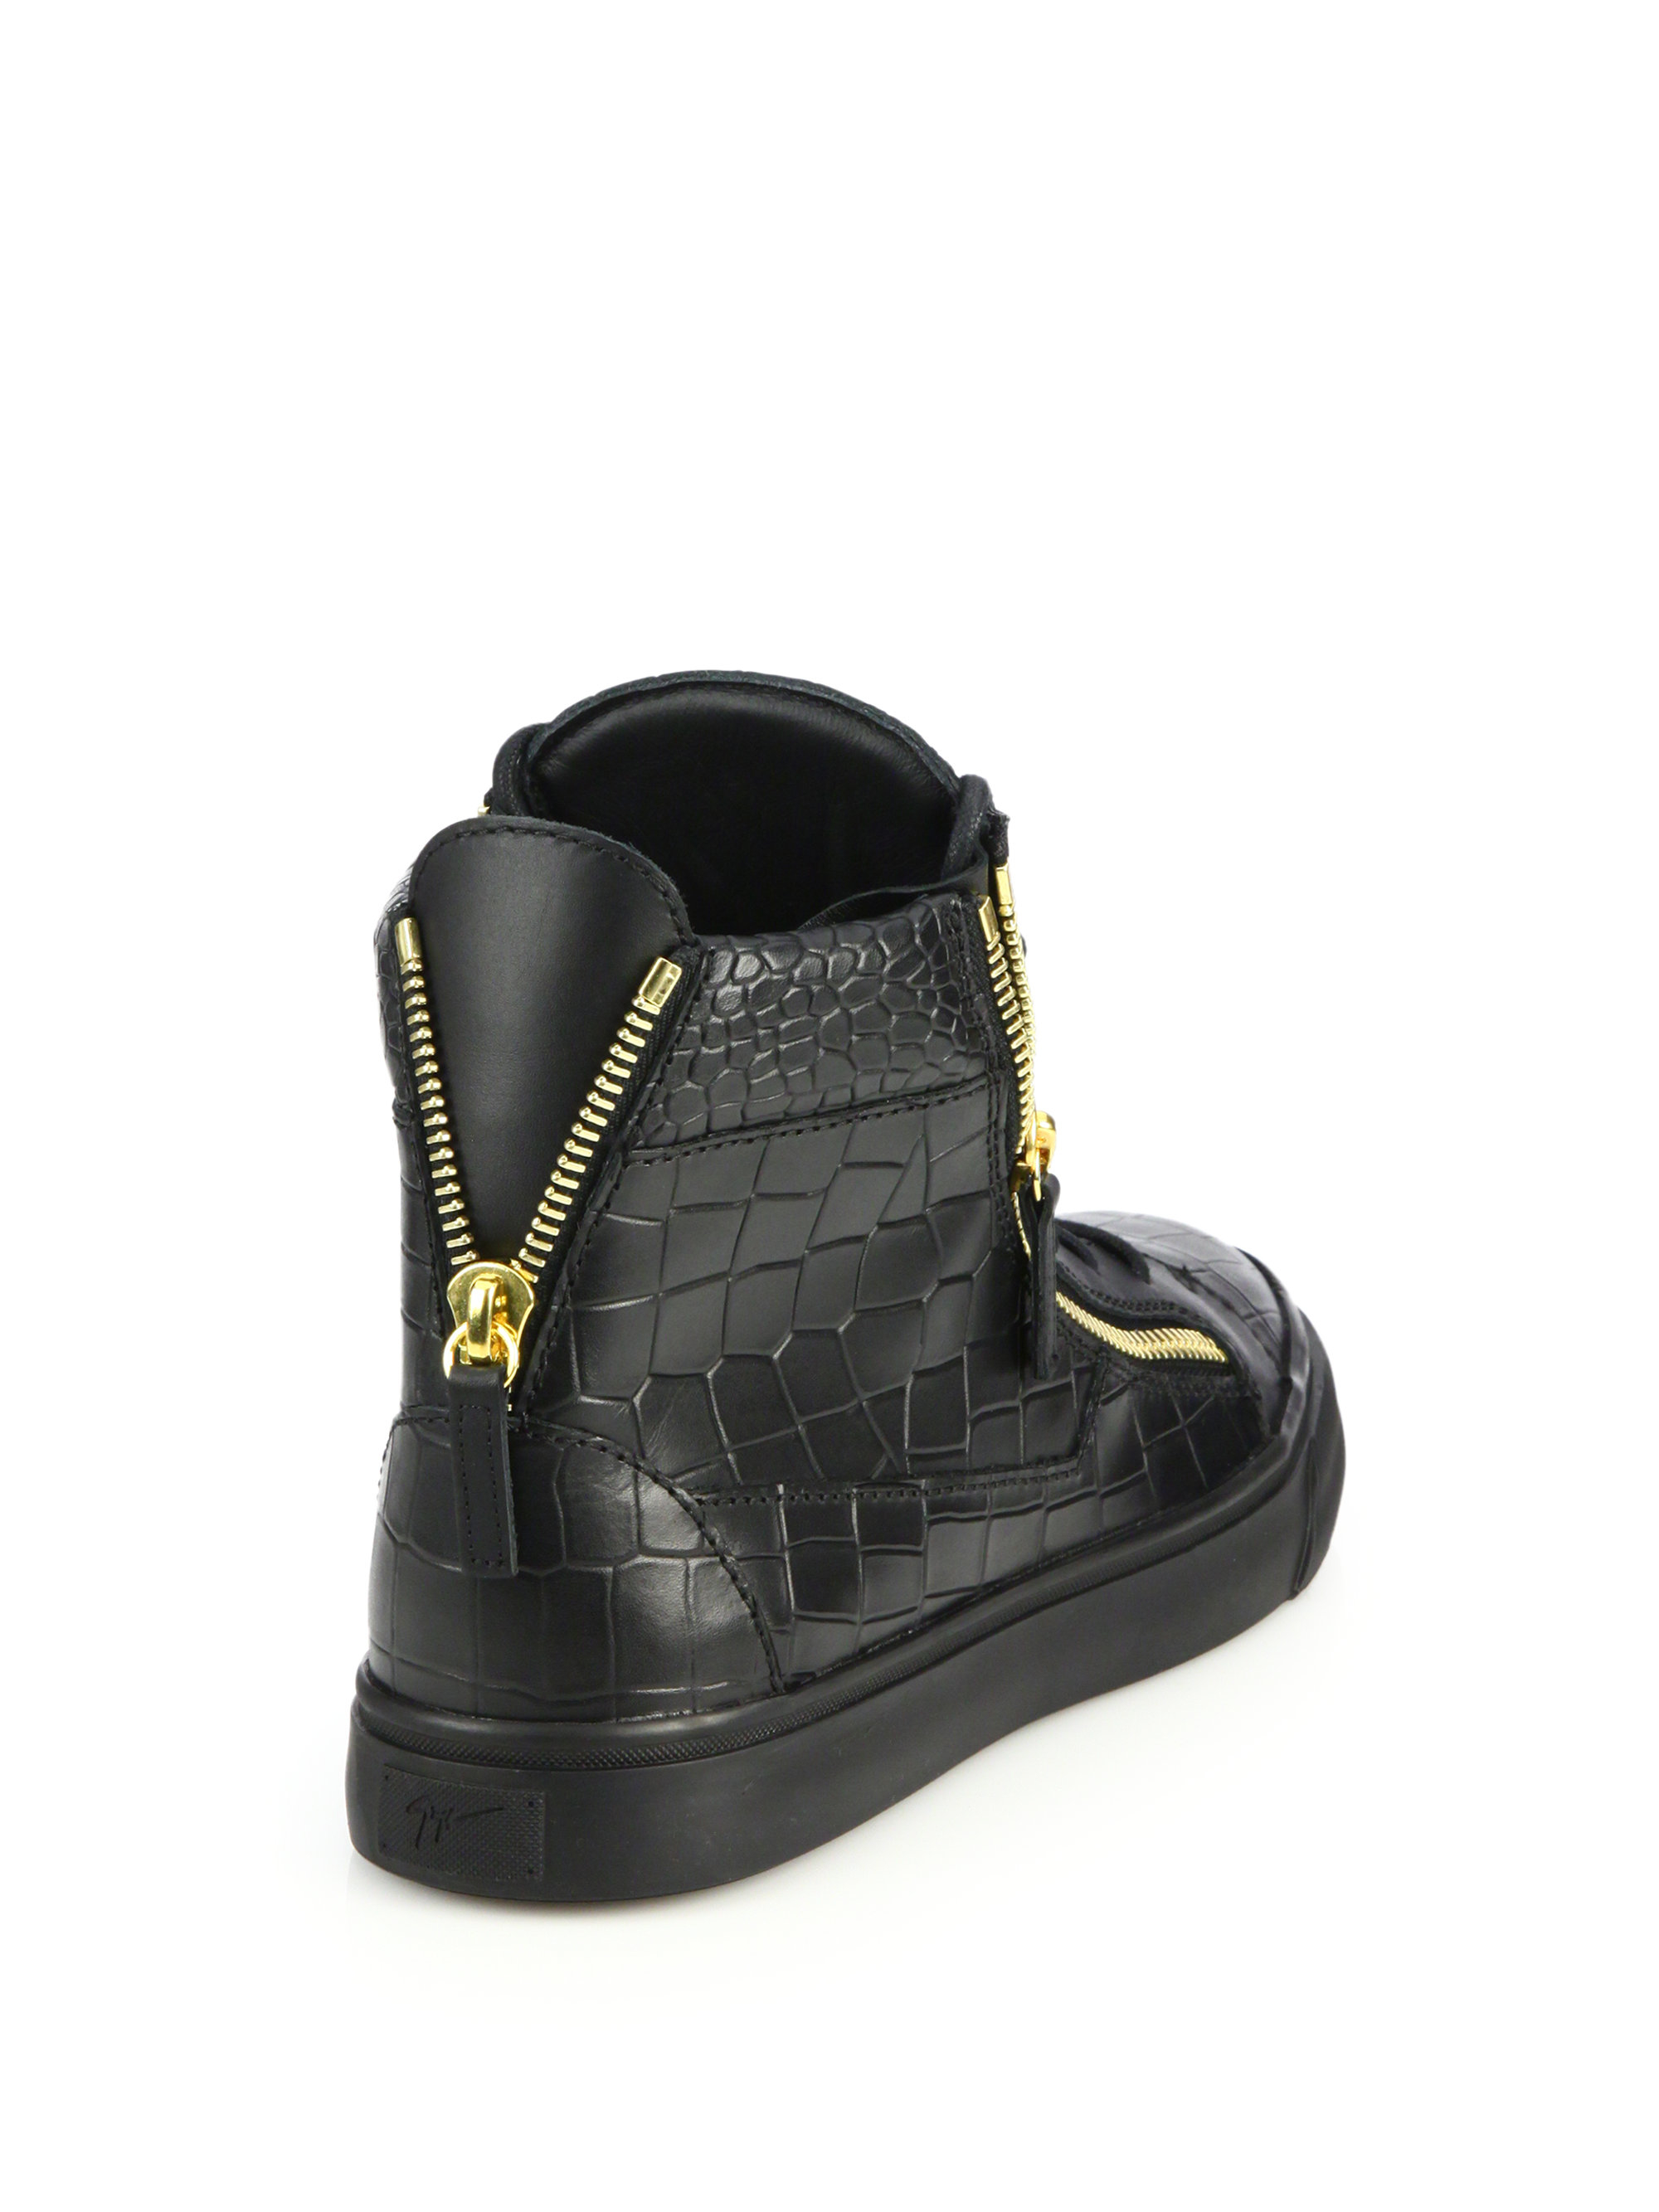 Supply For Sale Amazing Price For Sale Black Croc-Embossed Zayn High-Top Sneakers Giuseppe Zanotti NO8W0UCh